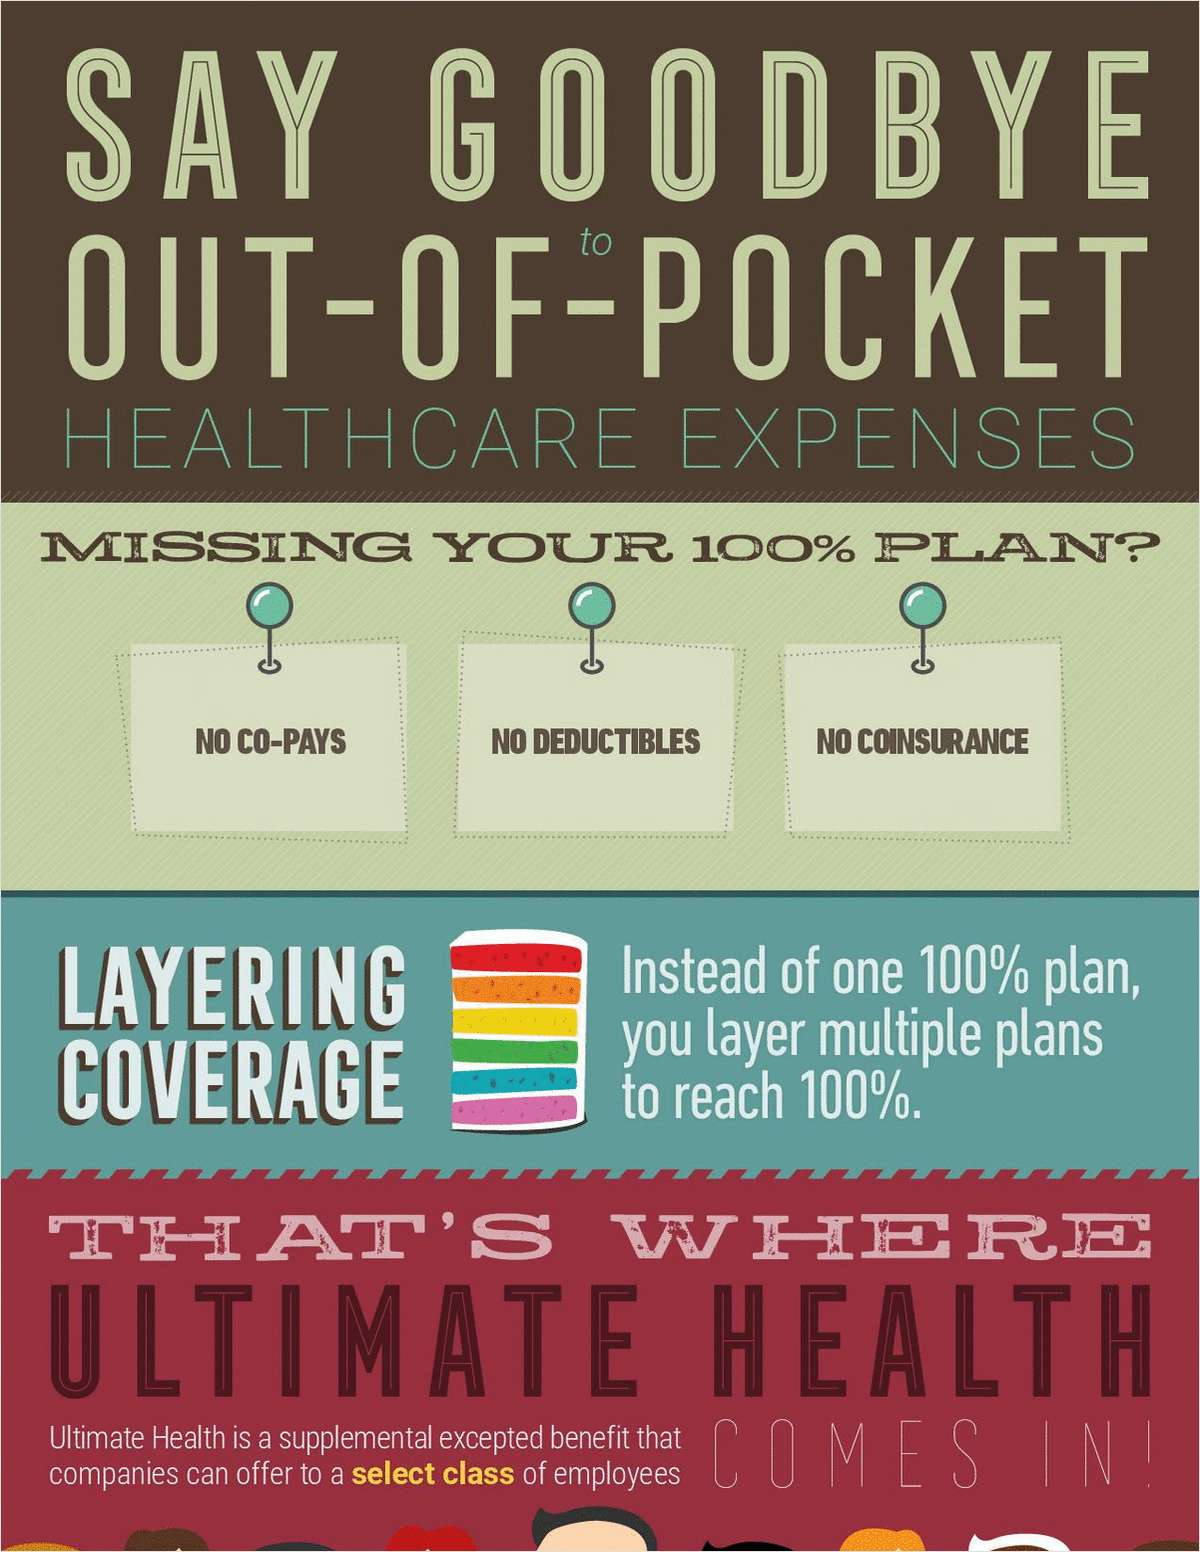 Help Clients Say Goodbye to Out-of-Pocket Healthcare Expenses